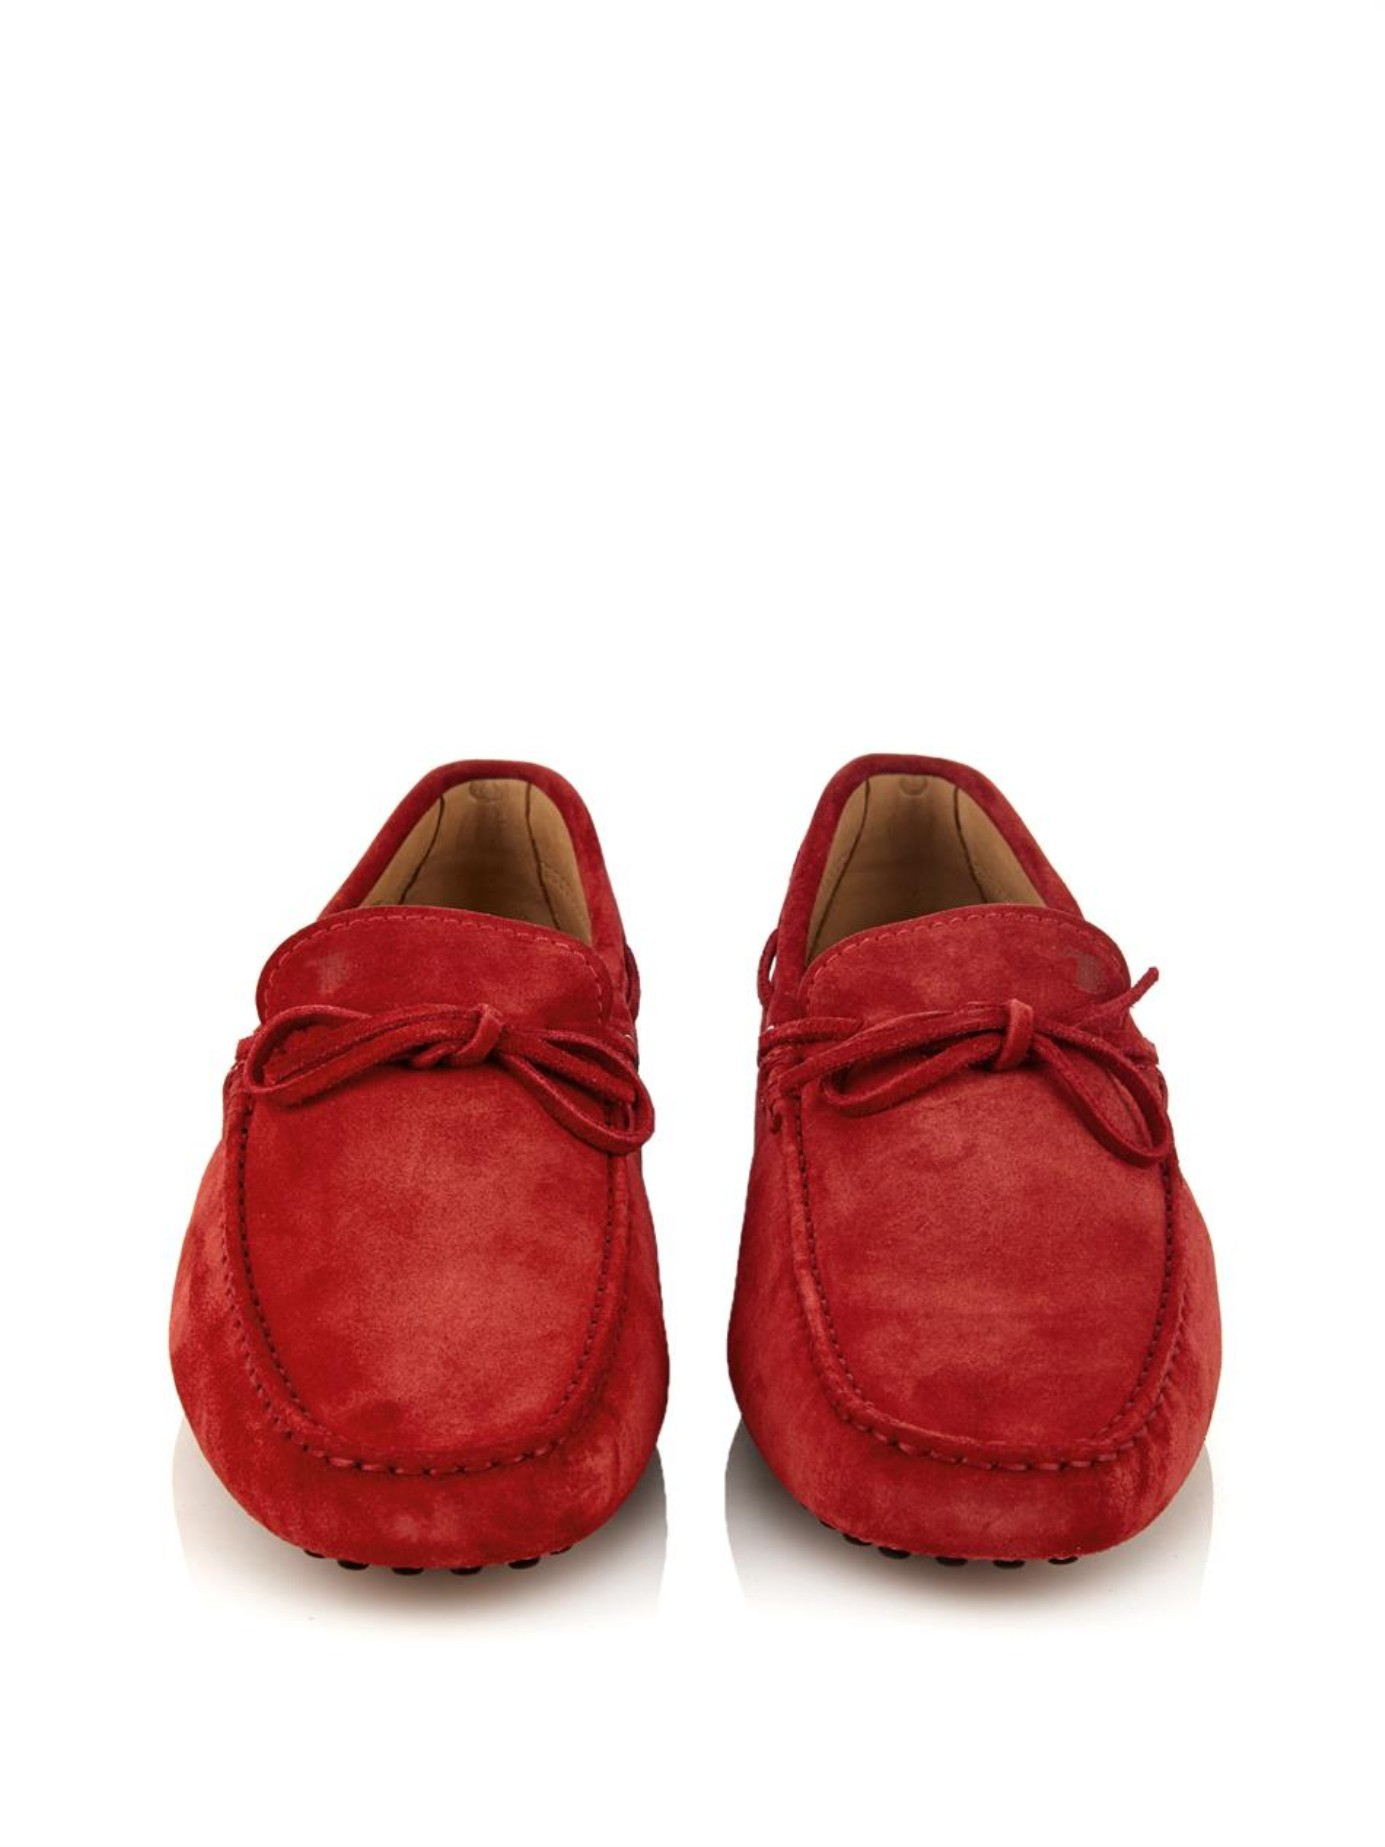 gommino driving shoes - Red Tod's Free Shipping Best Place Cheap Sale Get Authentic 2018 Unisex For Sale HzyzdnI